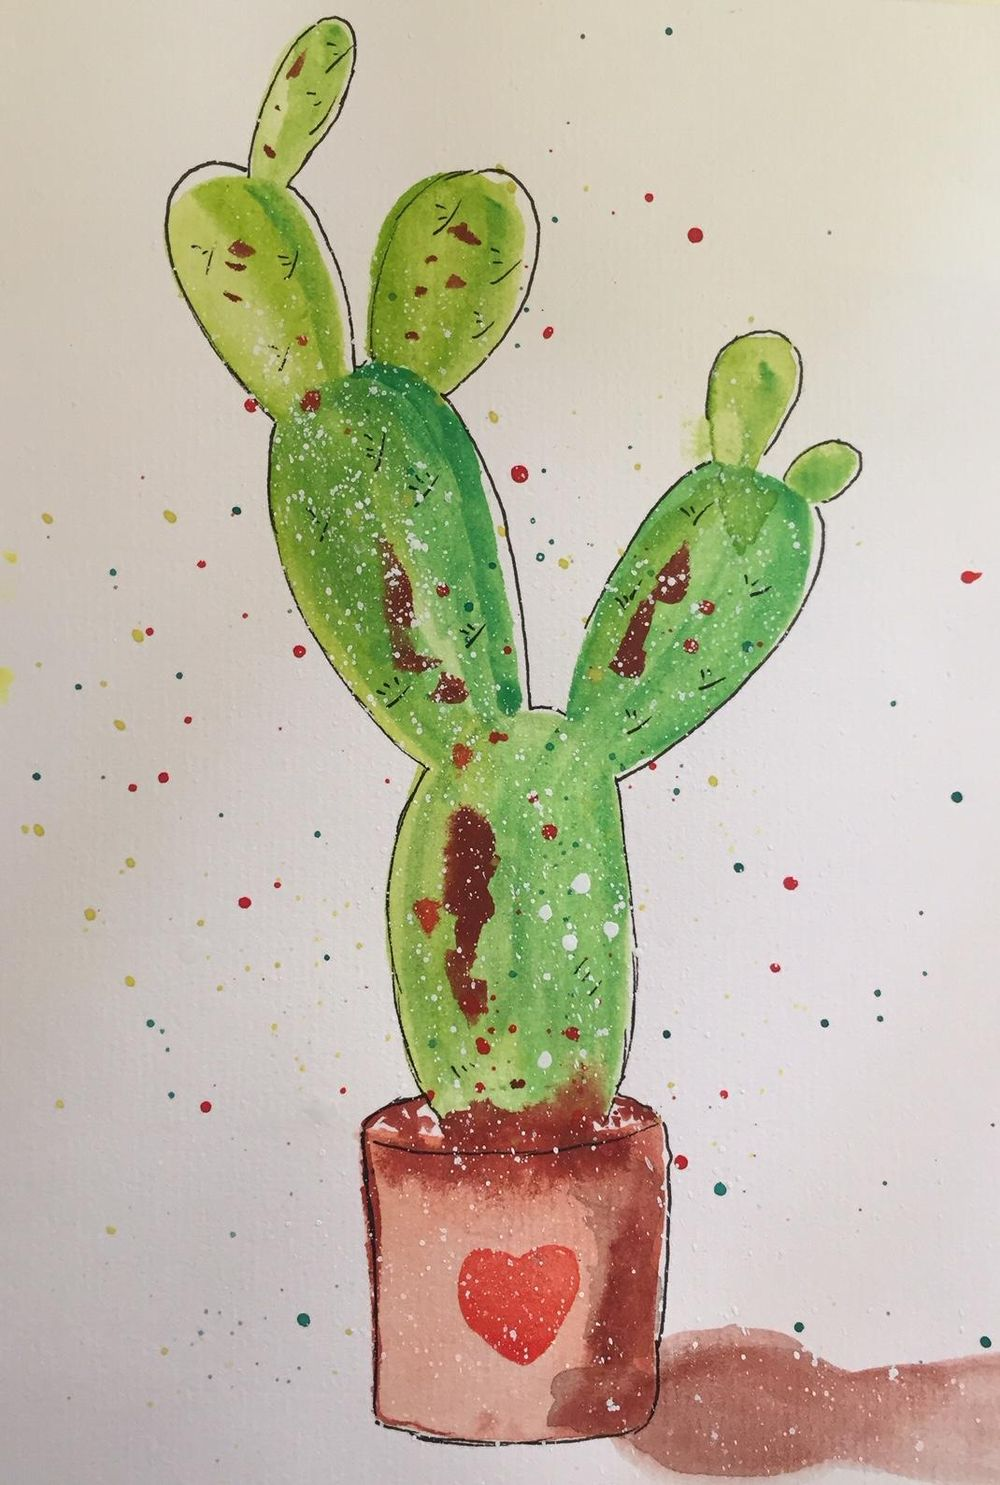 Watercolor and Ink - image 1 - student project